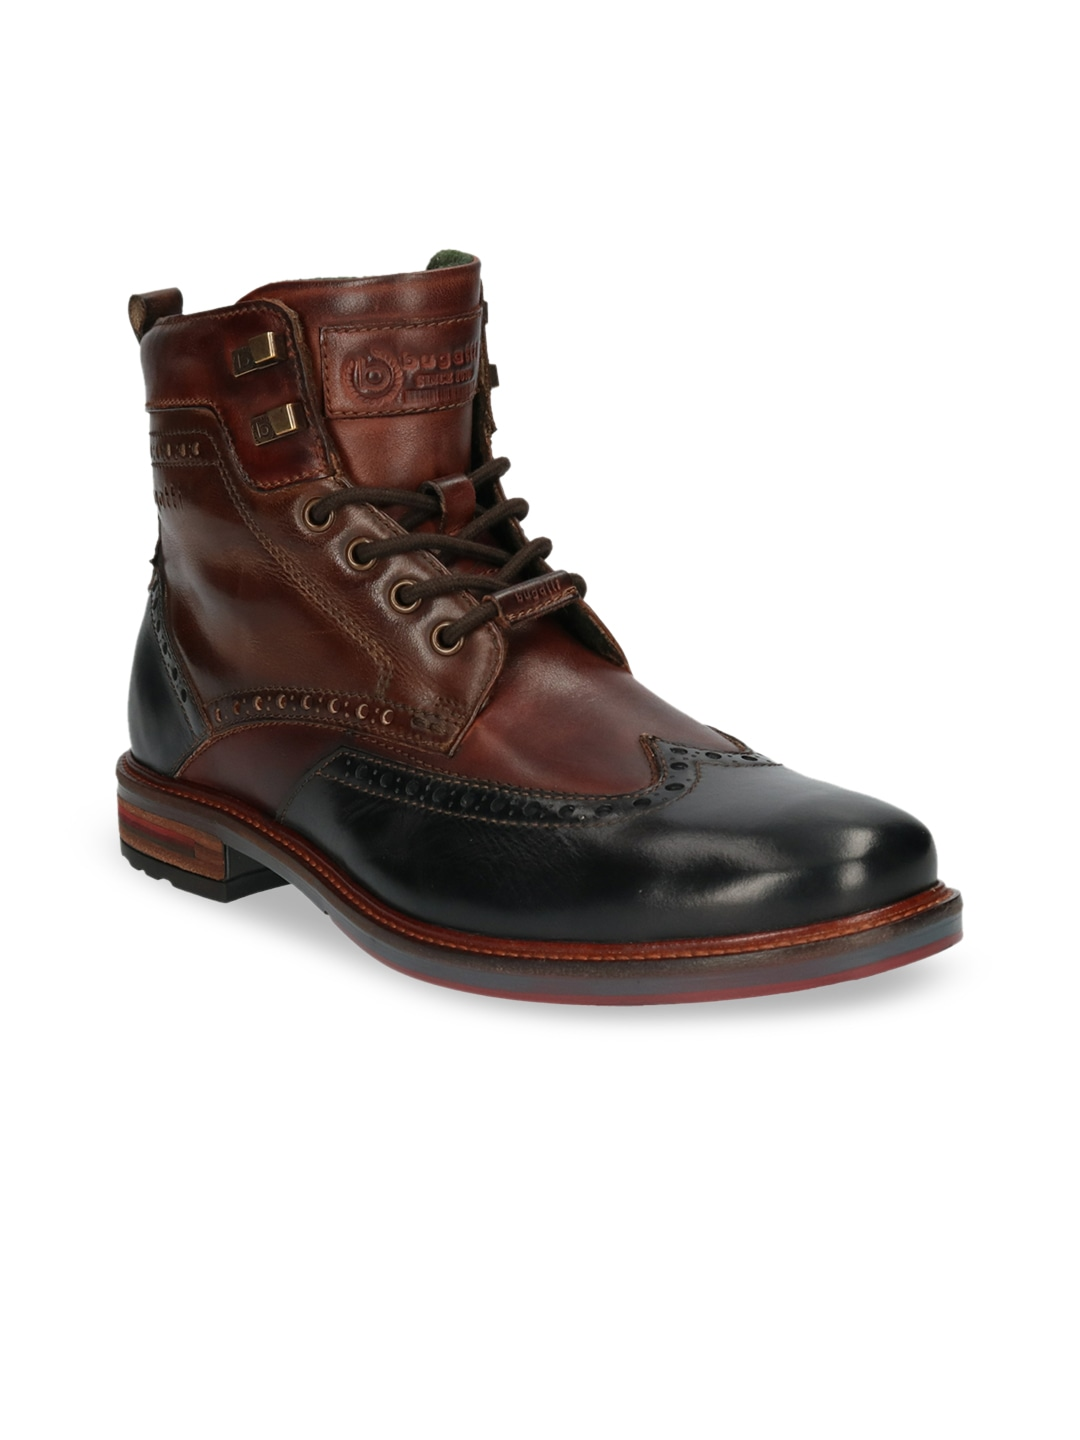 Brown Leather Semiformal High Top Boots